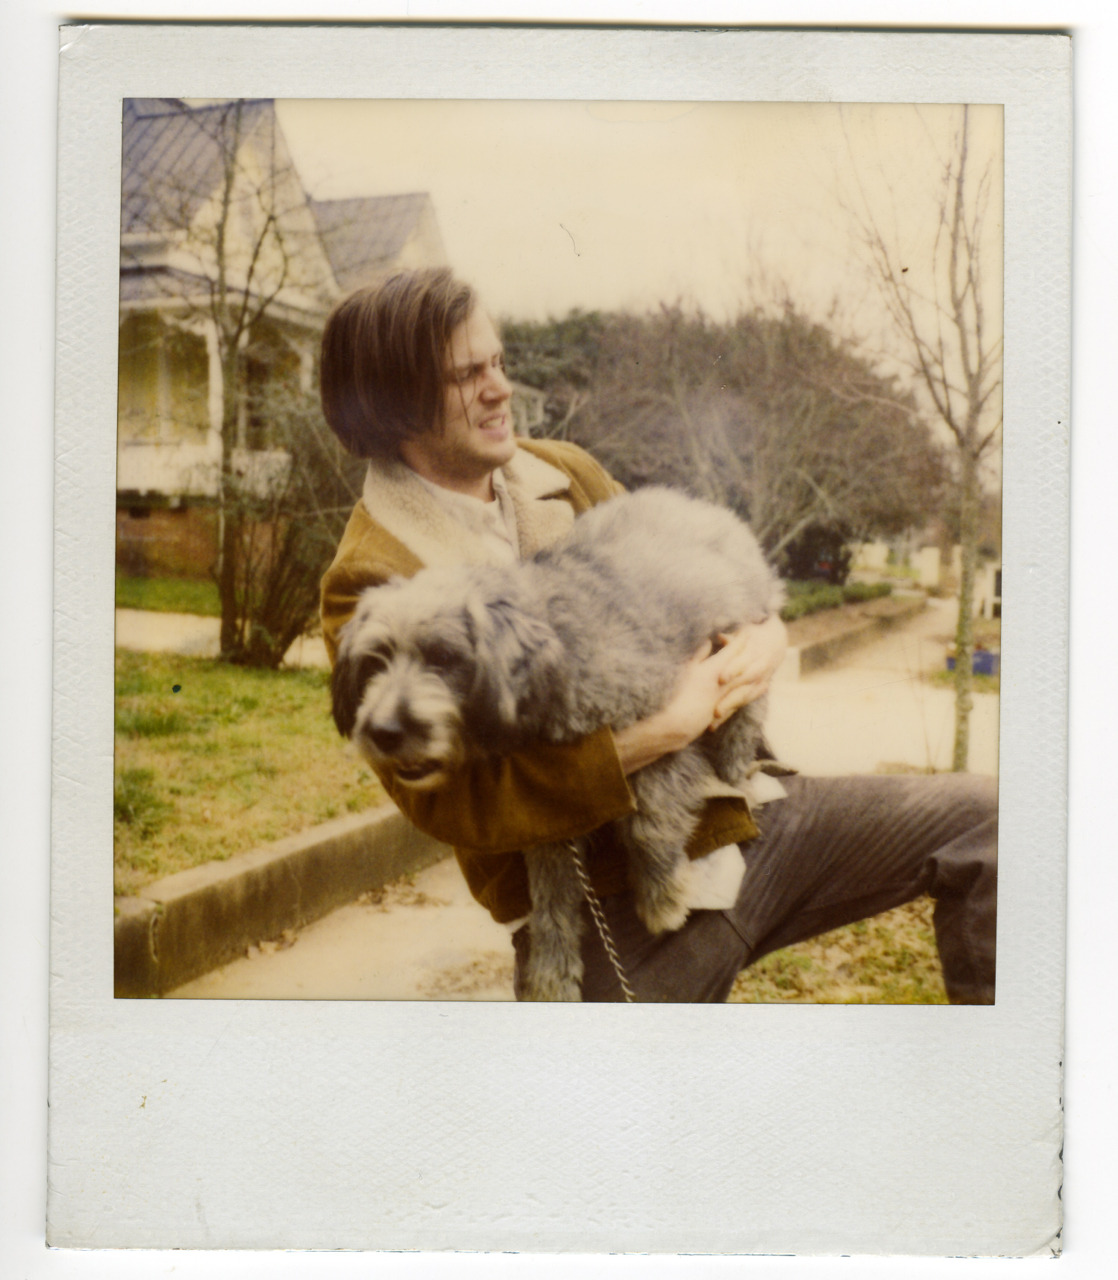 Polaroid of roomate Jeff Mangum and beloved dog in Athens, Georgia circa 1999.